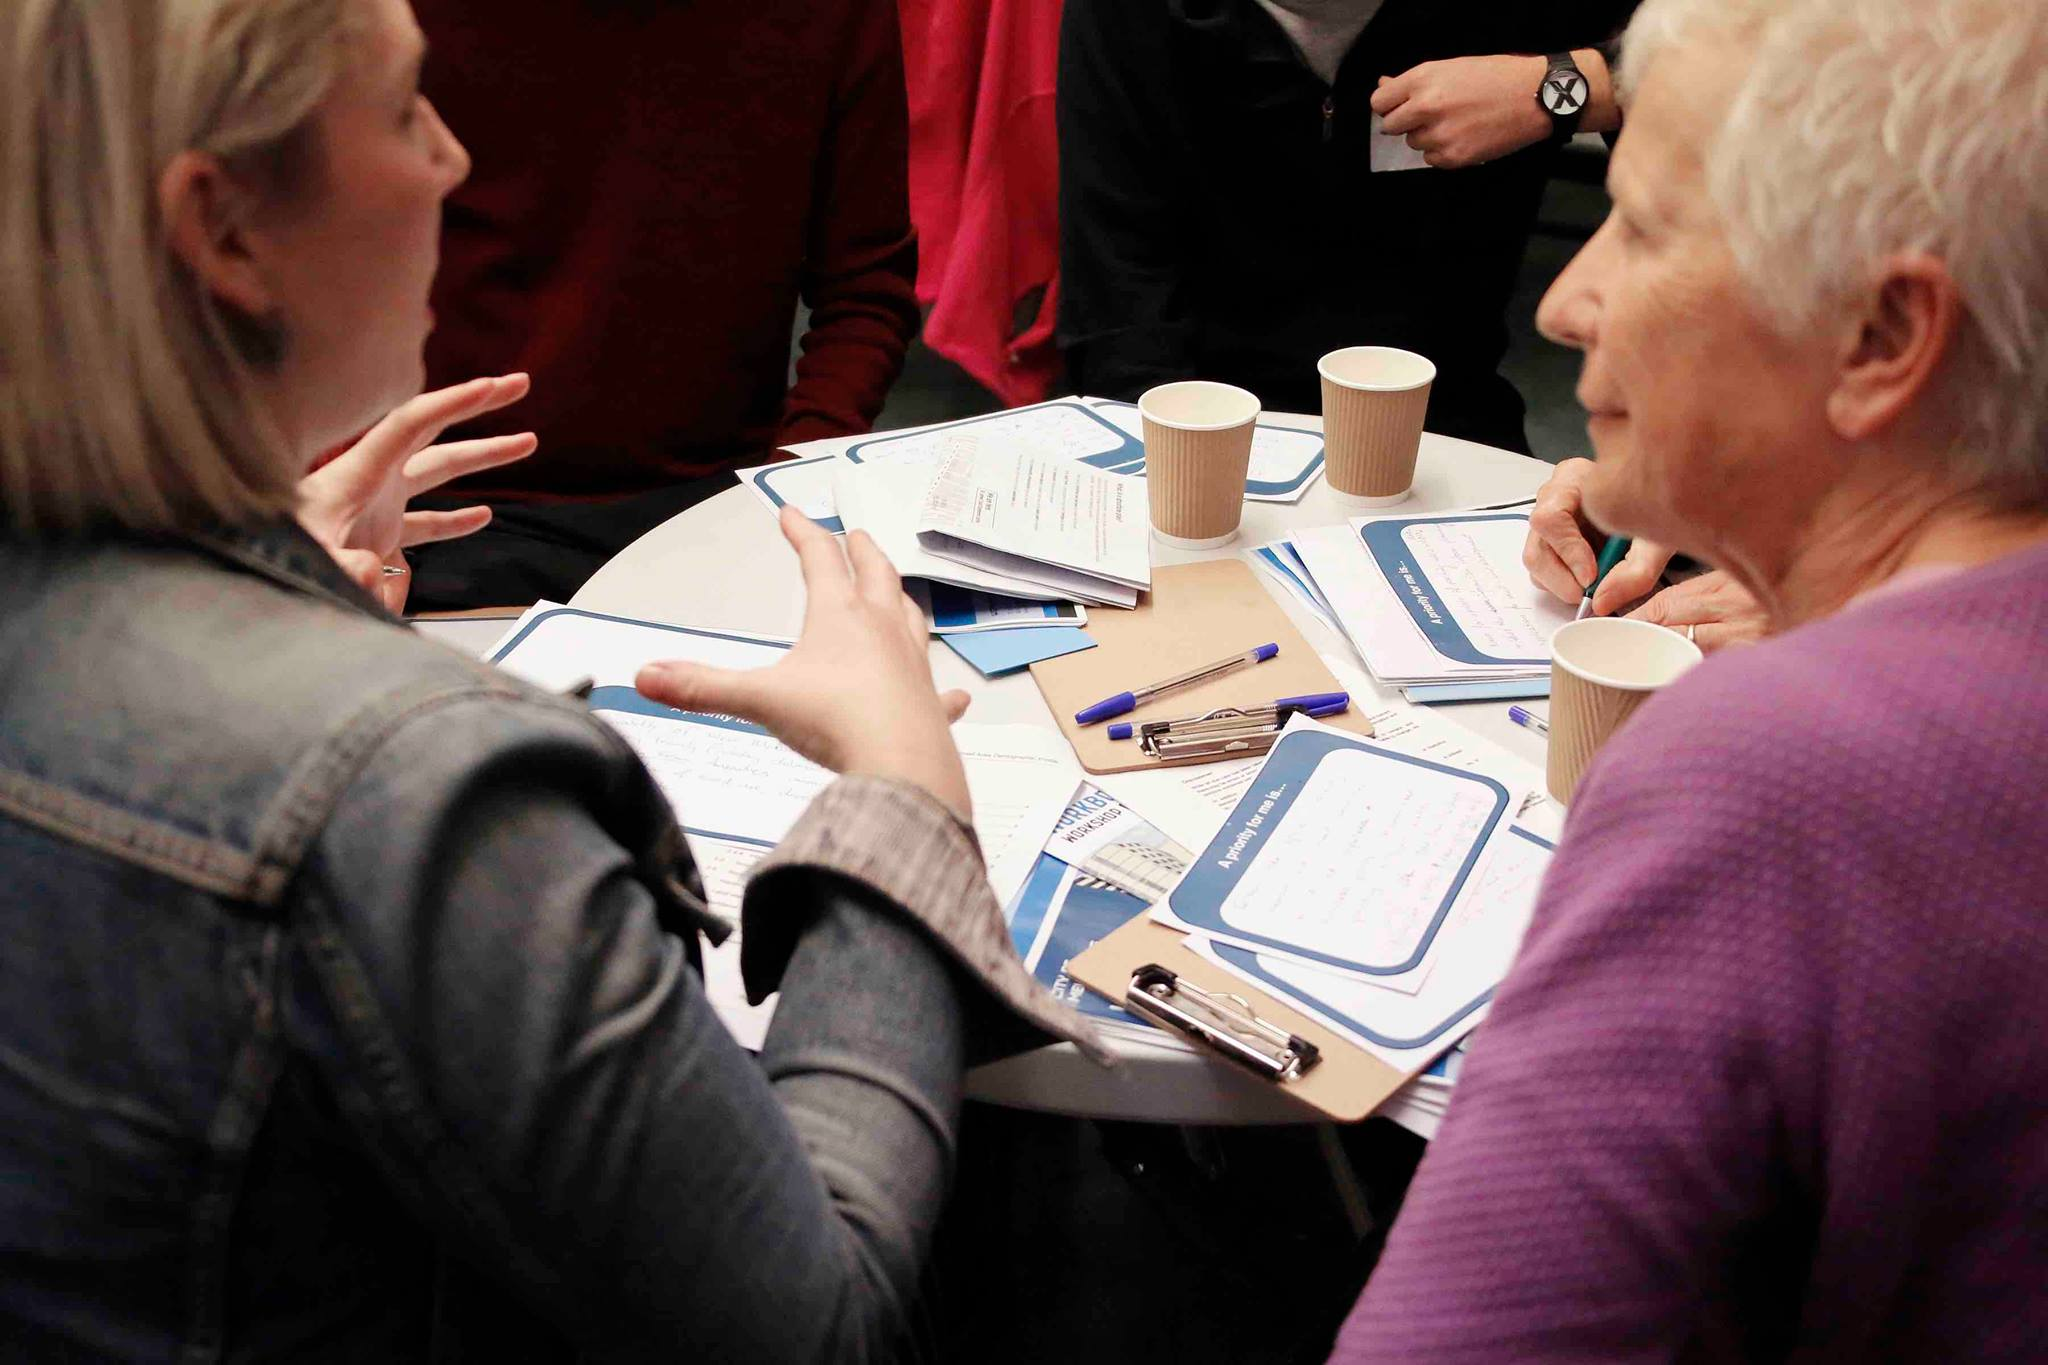 MosaicLab advisory committees tips and ideas for managing conflict